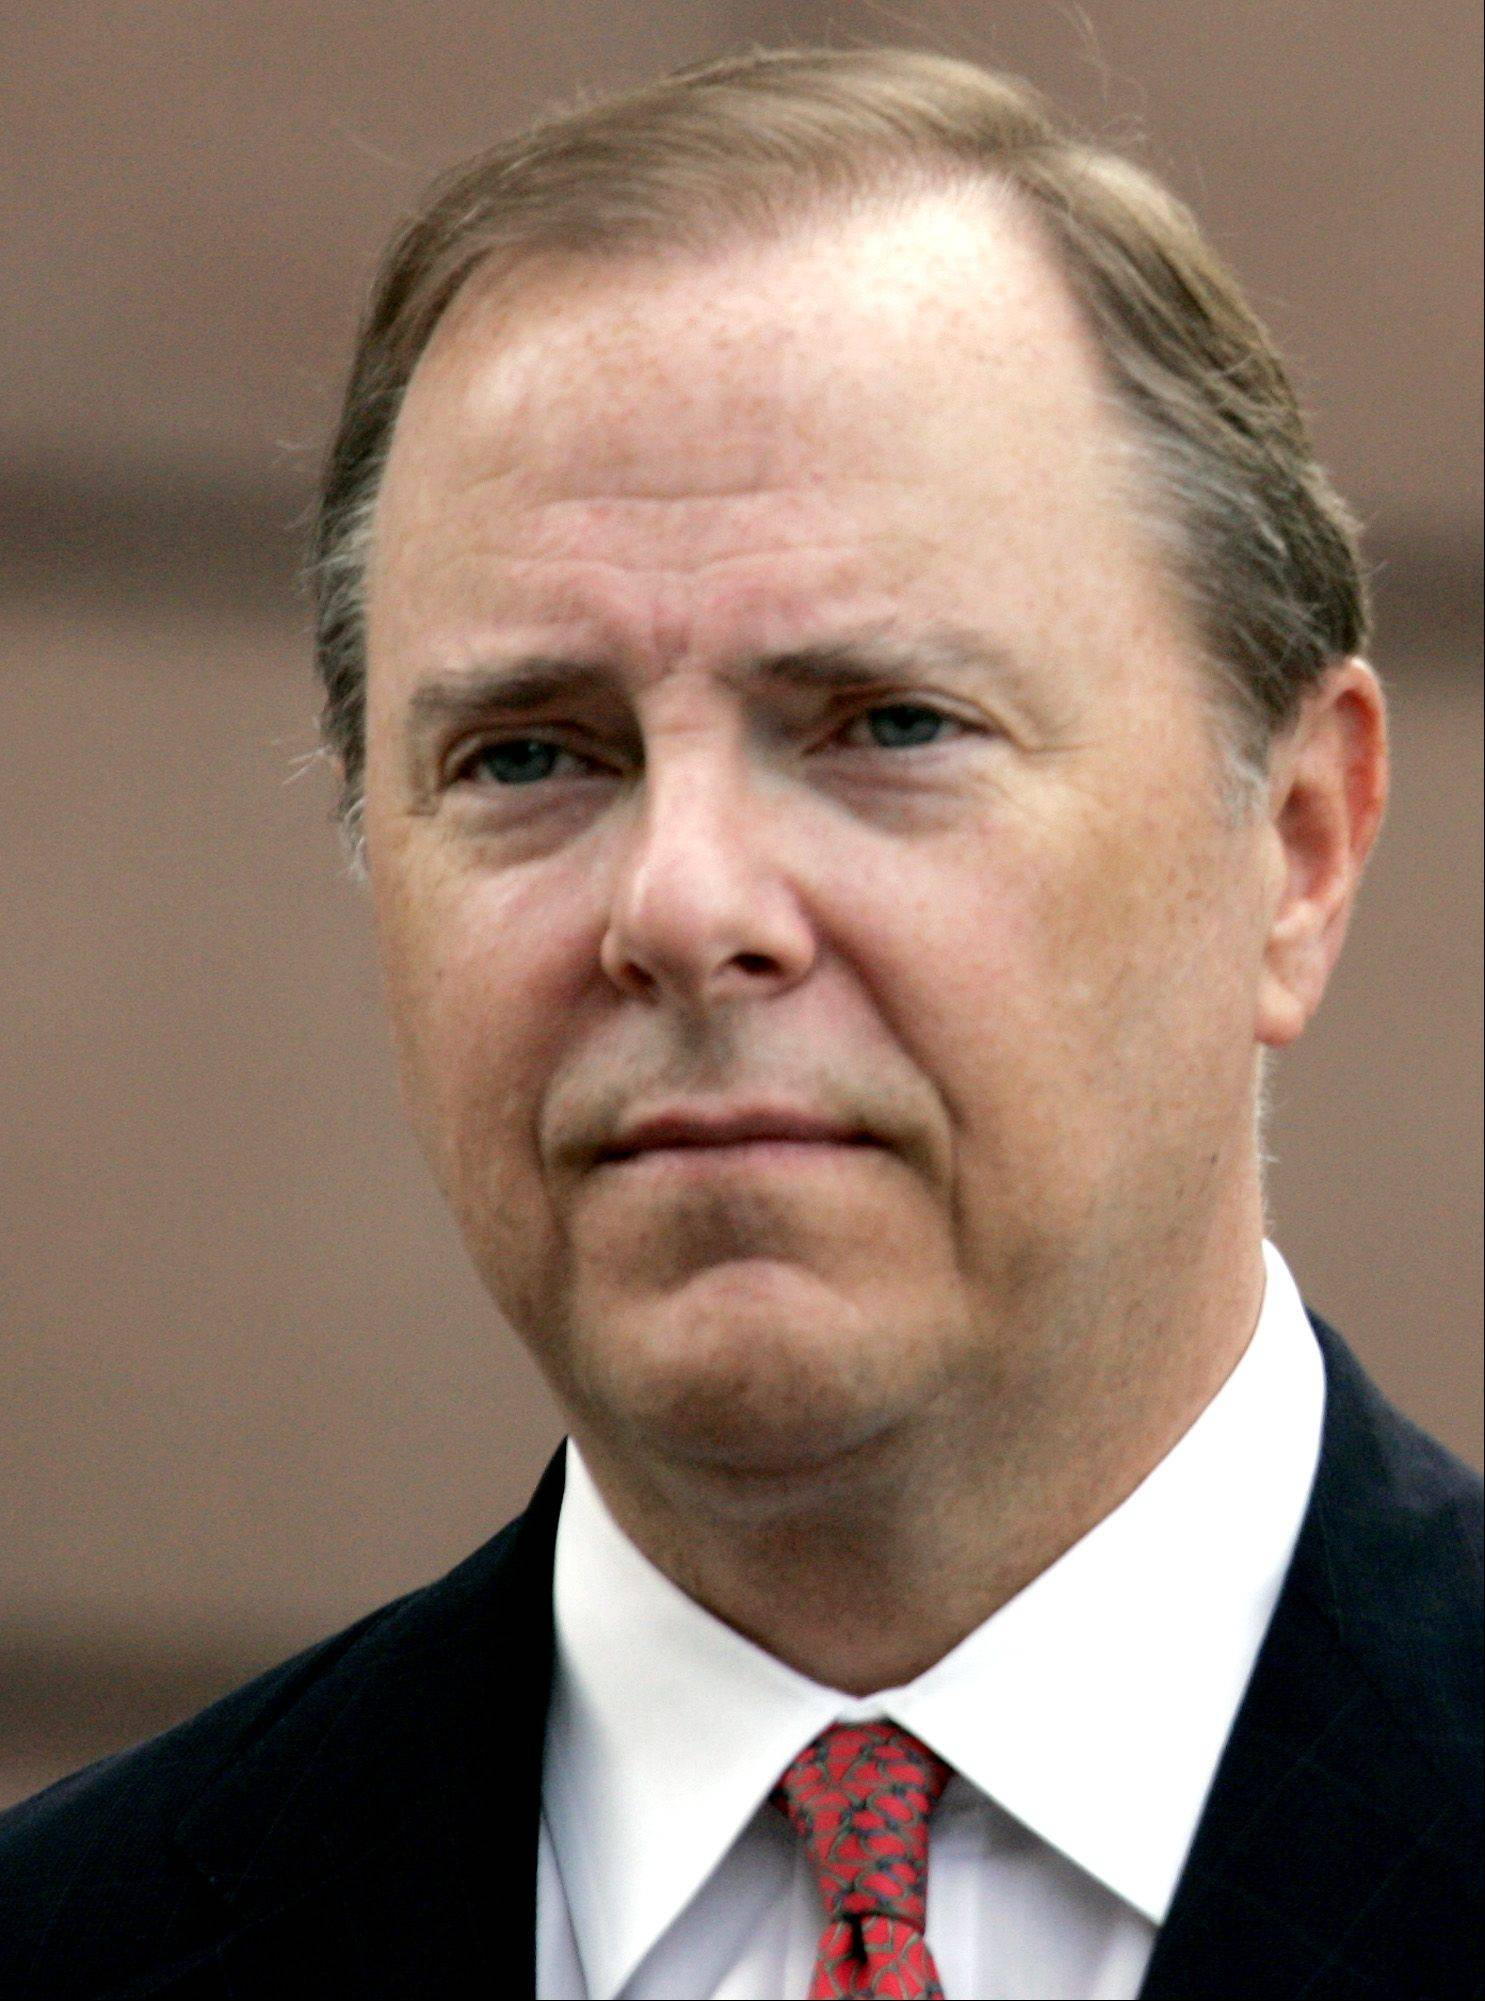 Former Enron executive Jeffrey Skilling has been in prison since December 2006 and is currently serving his sentence in a low security facility outside of Denver.